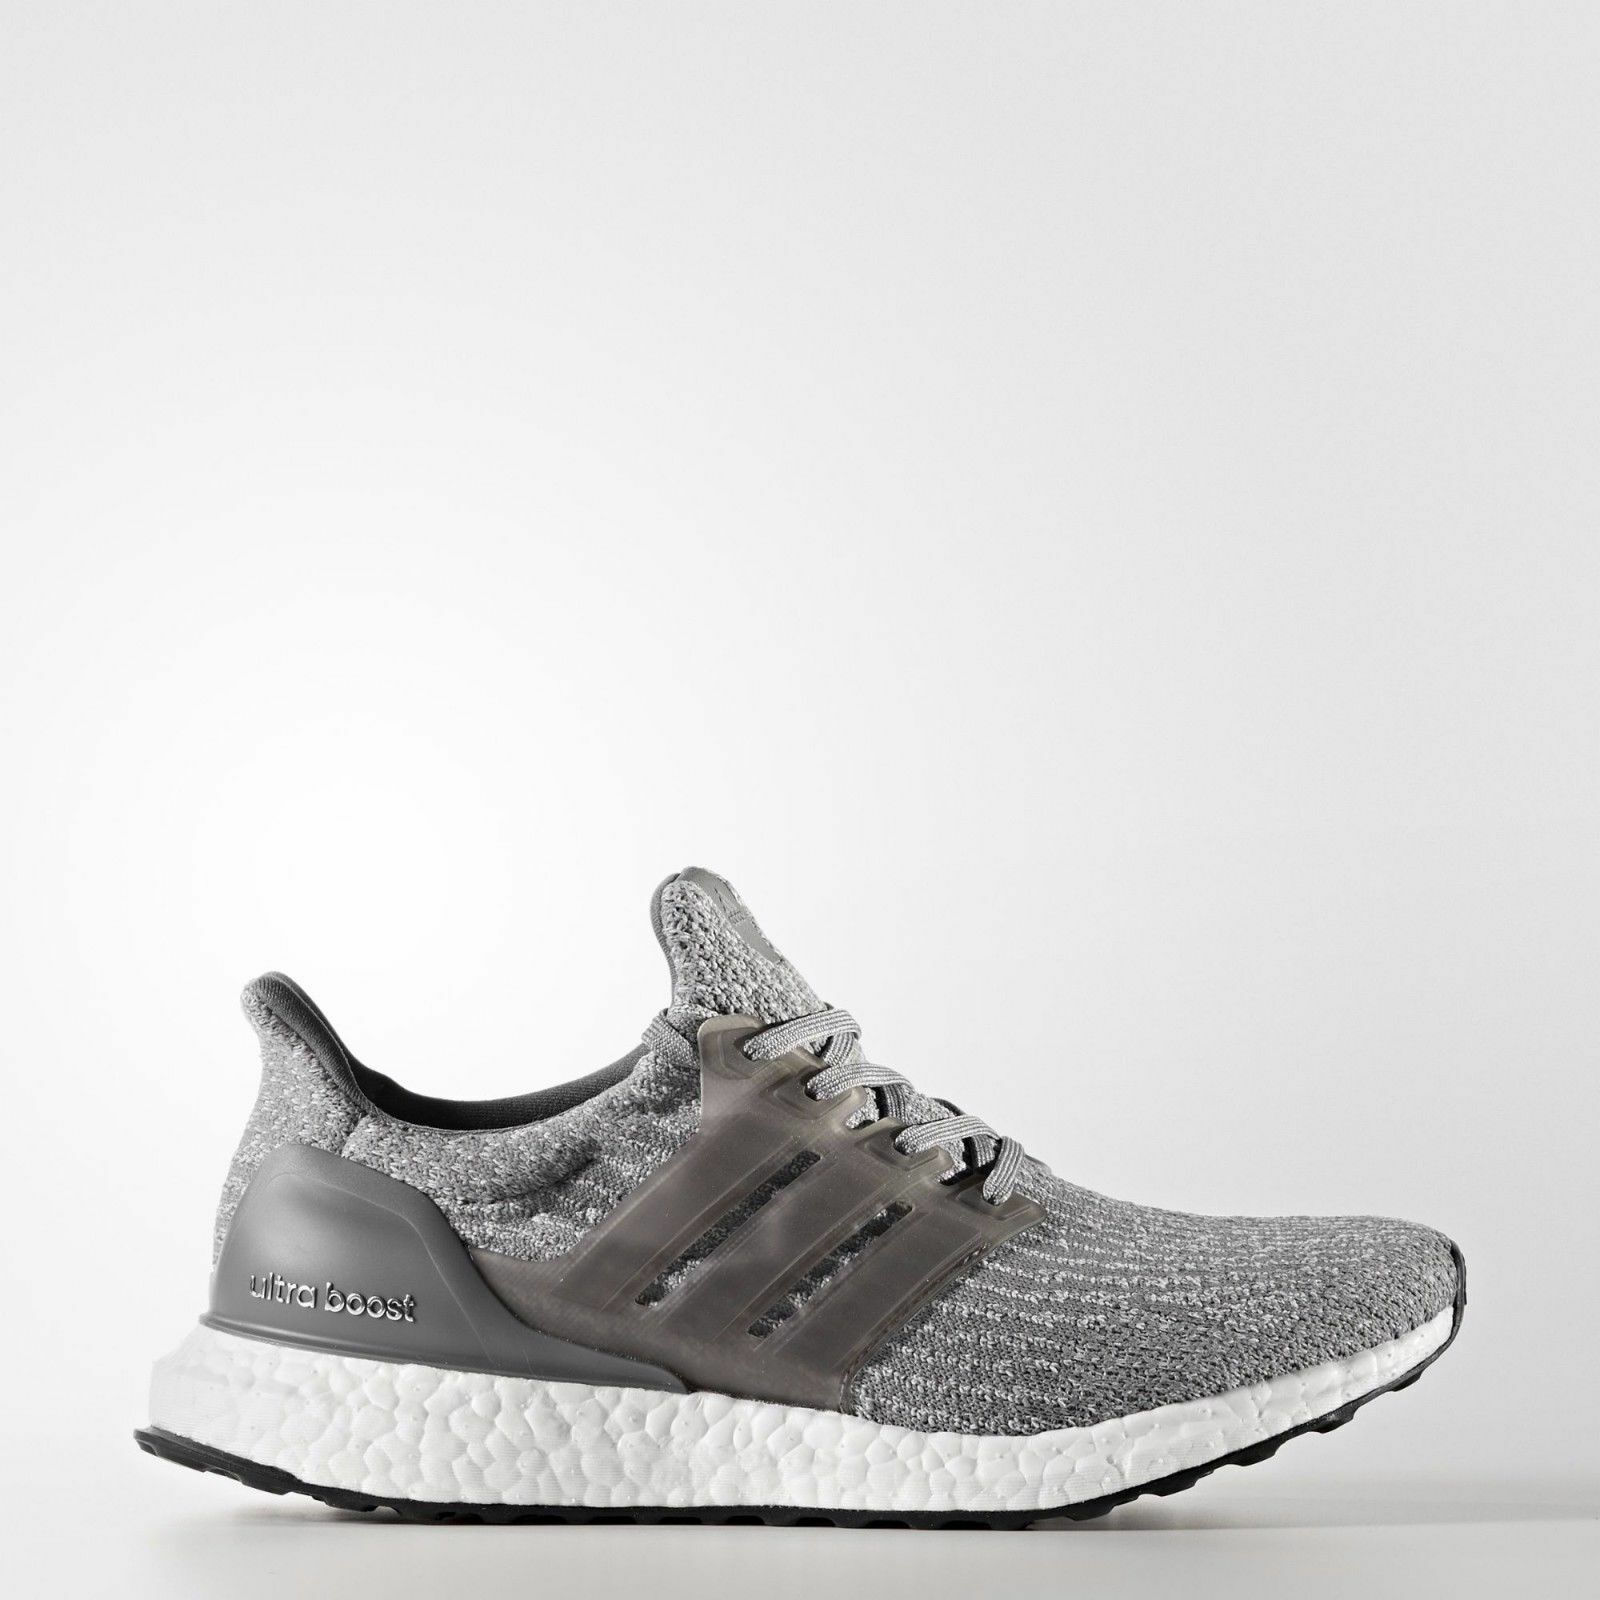 Adidas Women's Ultra Boost 3.0 Grey S82052 Woman's size 12